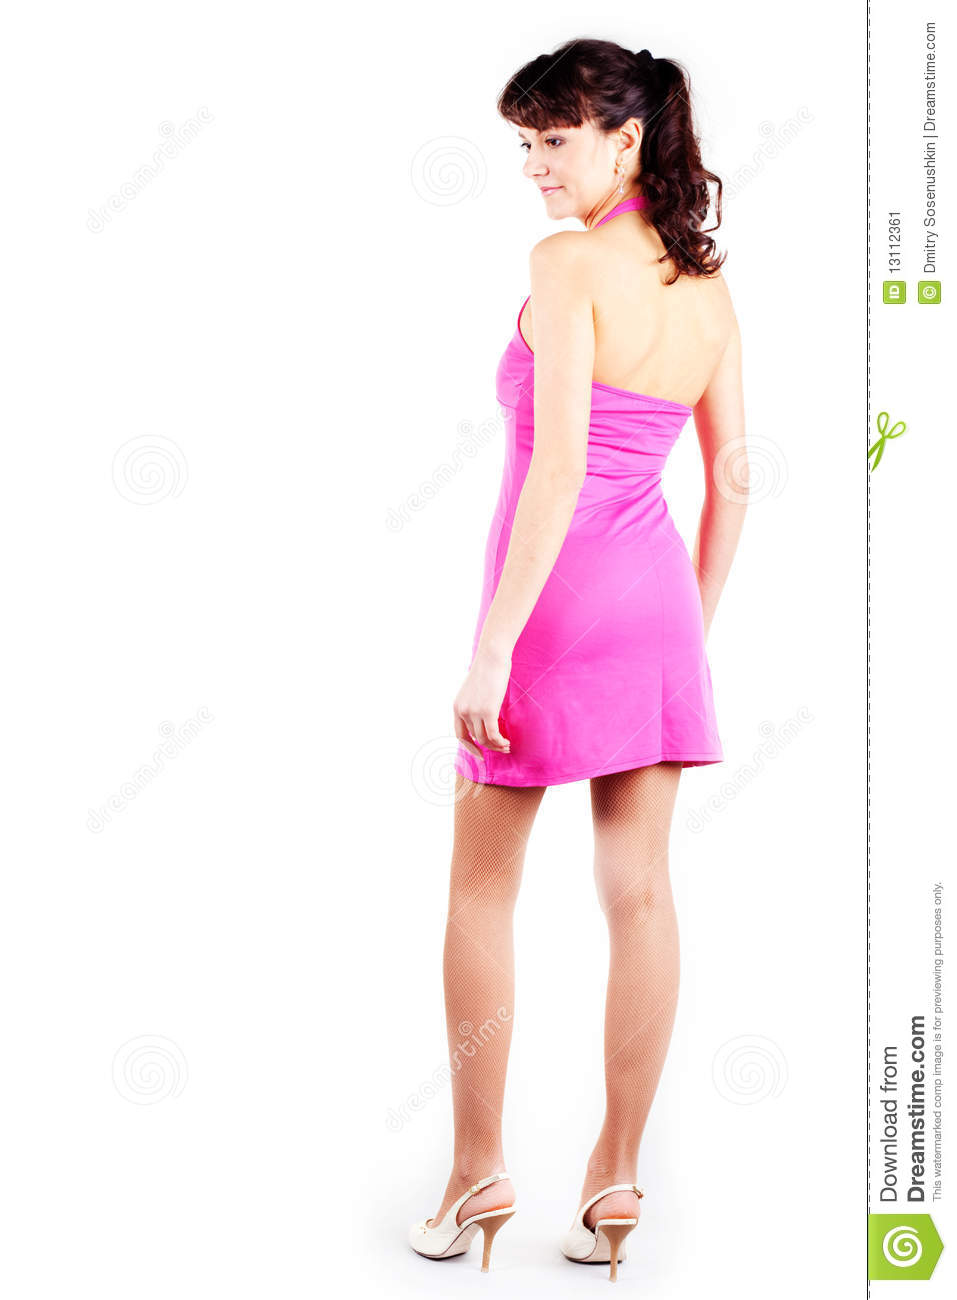 Cool Beautiful Young Woman Wearing A Short Dress Stock Image - Image 25391869